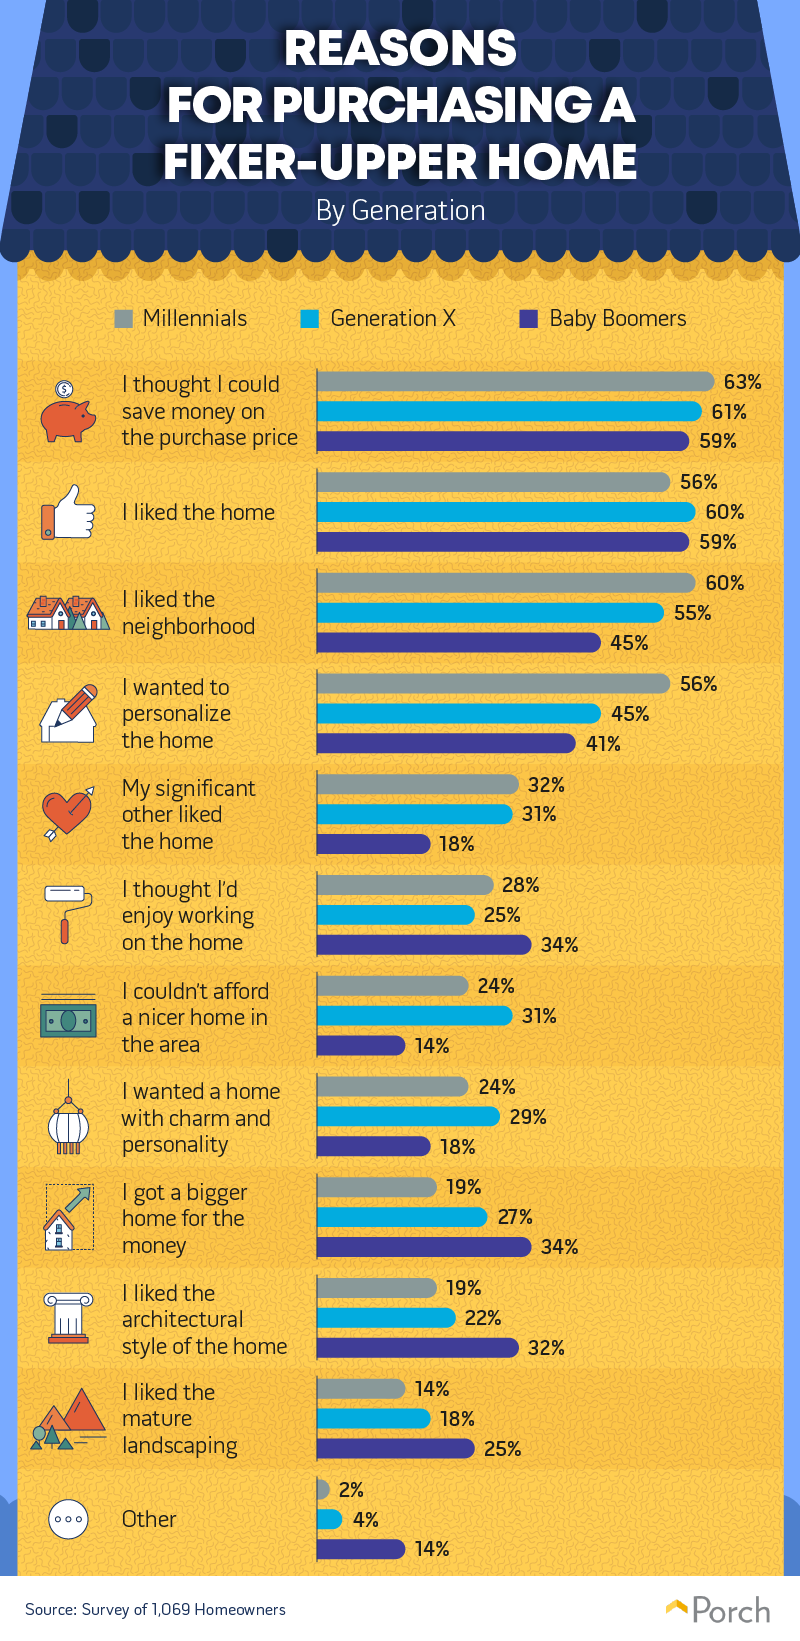 Reasons for purchasing a fixer-upper home by generation